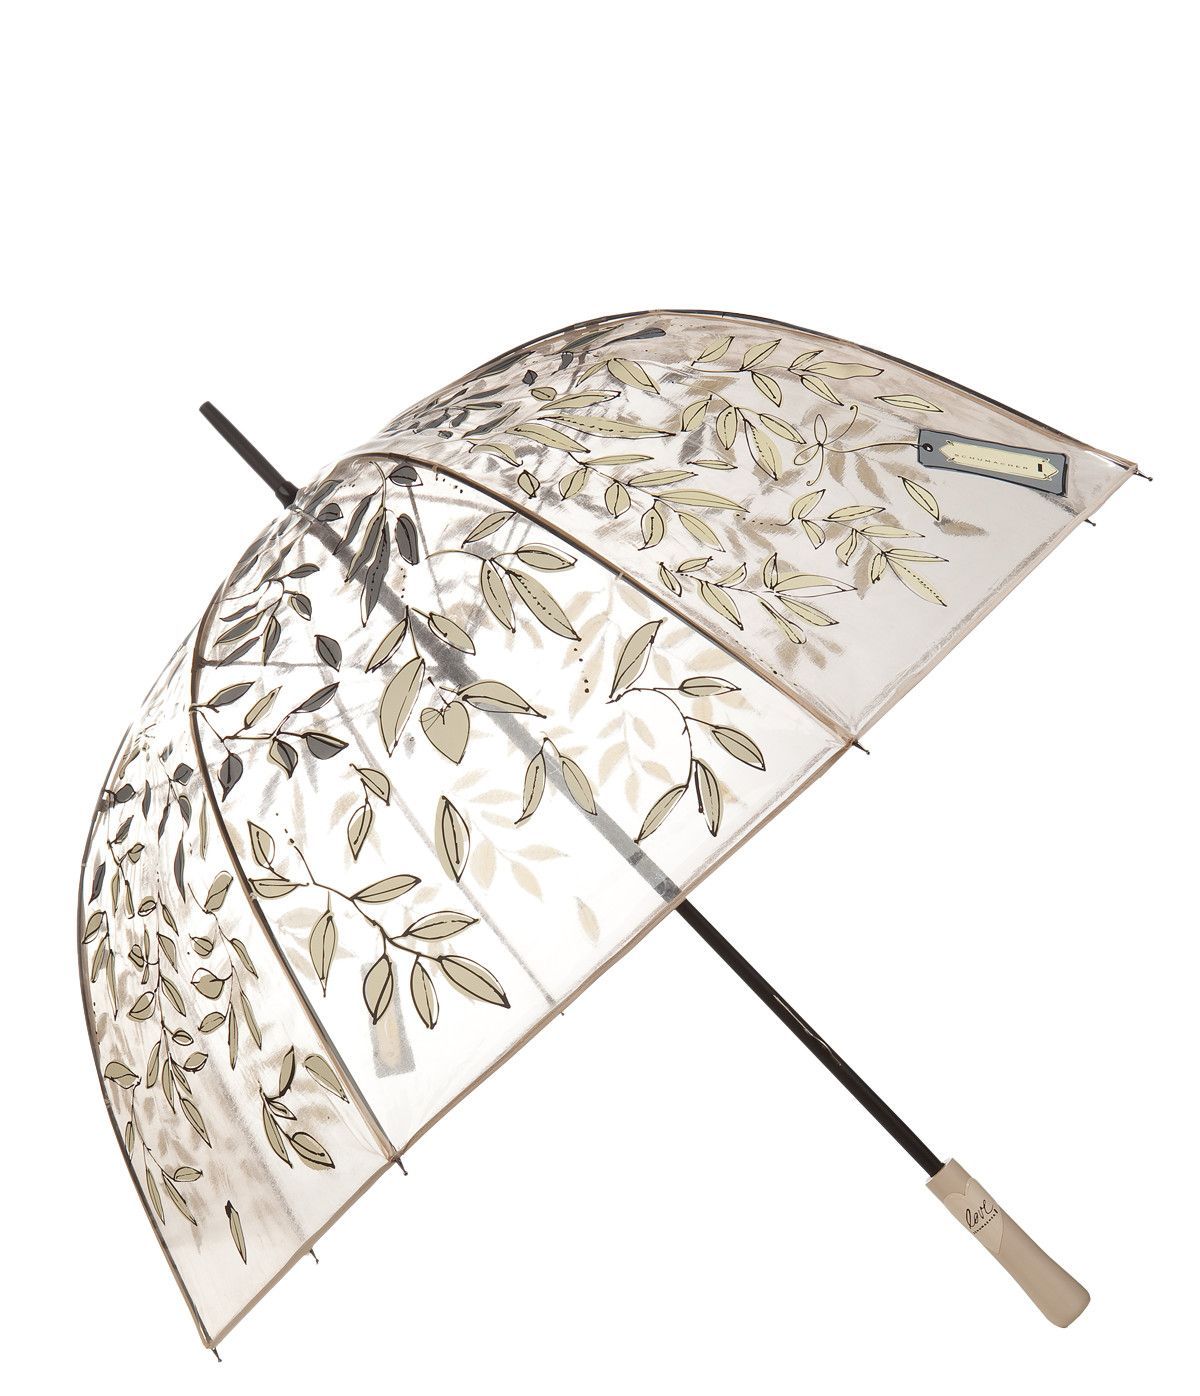 Beautiful Love Tree Umbrella -  Dorothee Schumacher #keepyoudry#fashion#umbrella#love www.velvetclothing.co.uk